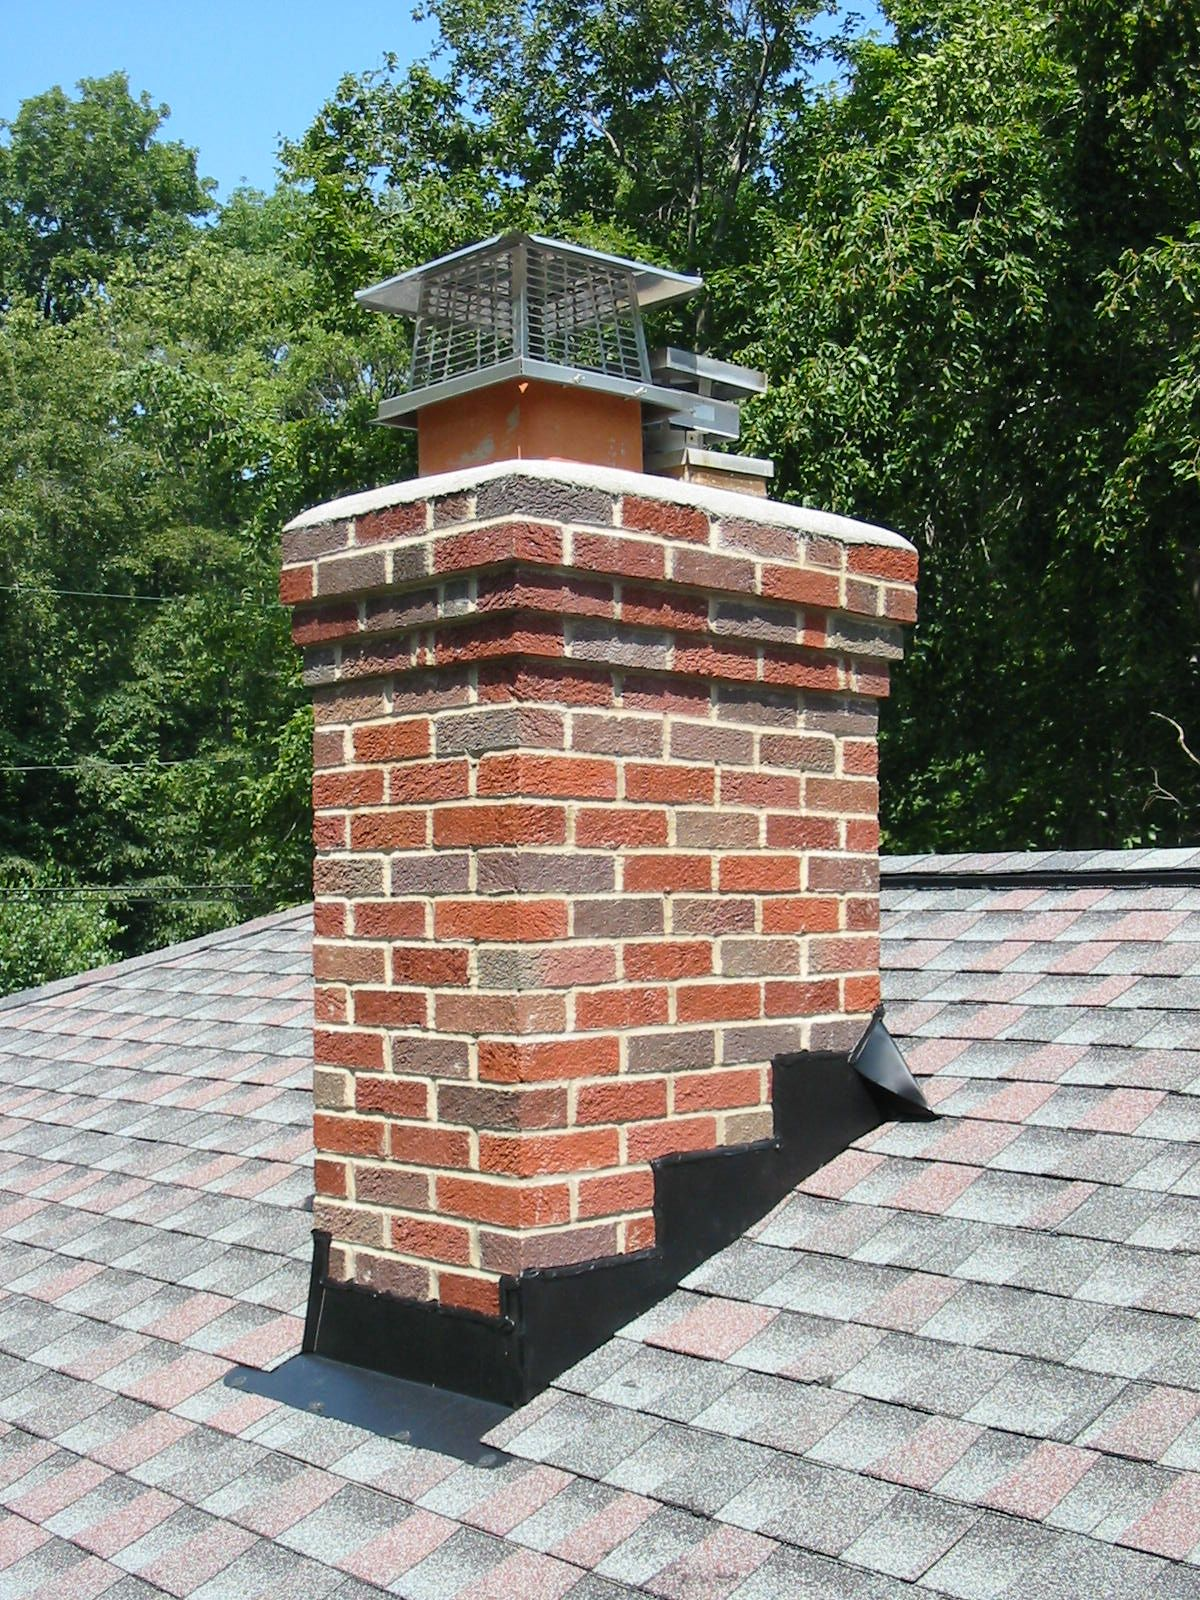 Stainless Steel Chimney Caps Carry A Lifetime Warranty